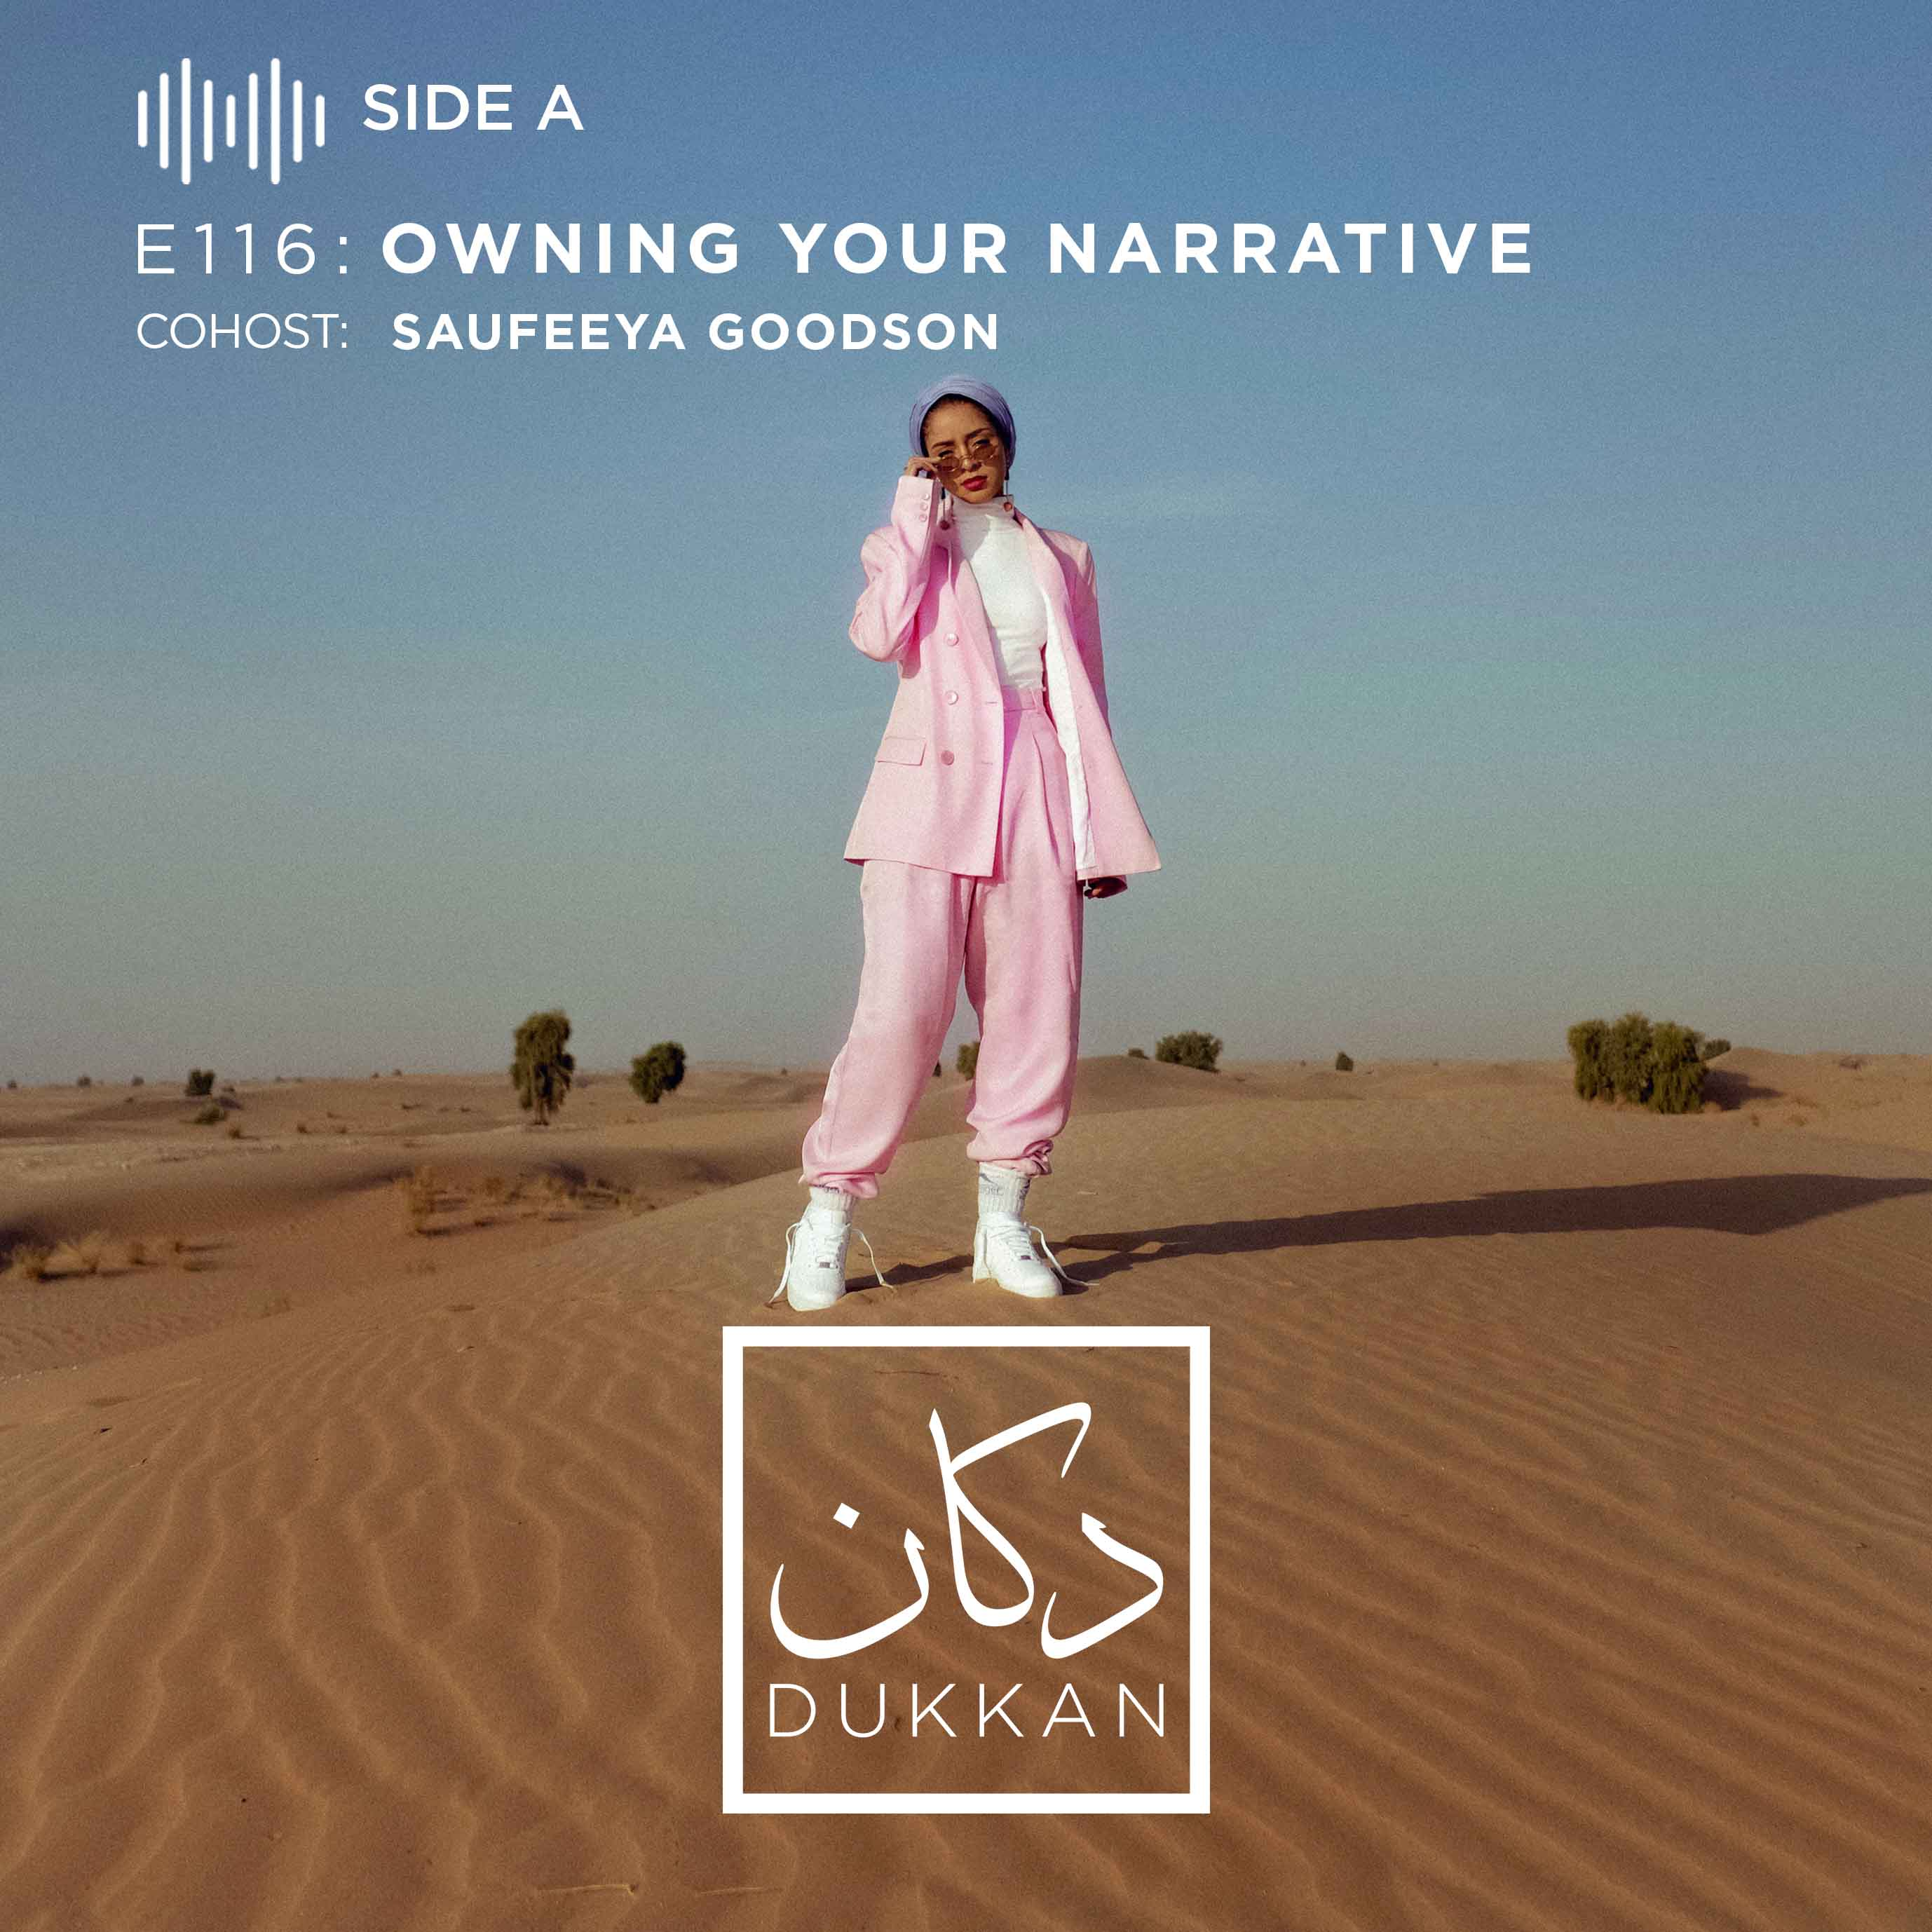 E116 - Side A: Owning Your Narrative (Saufeeya Goodson)